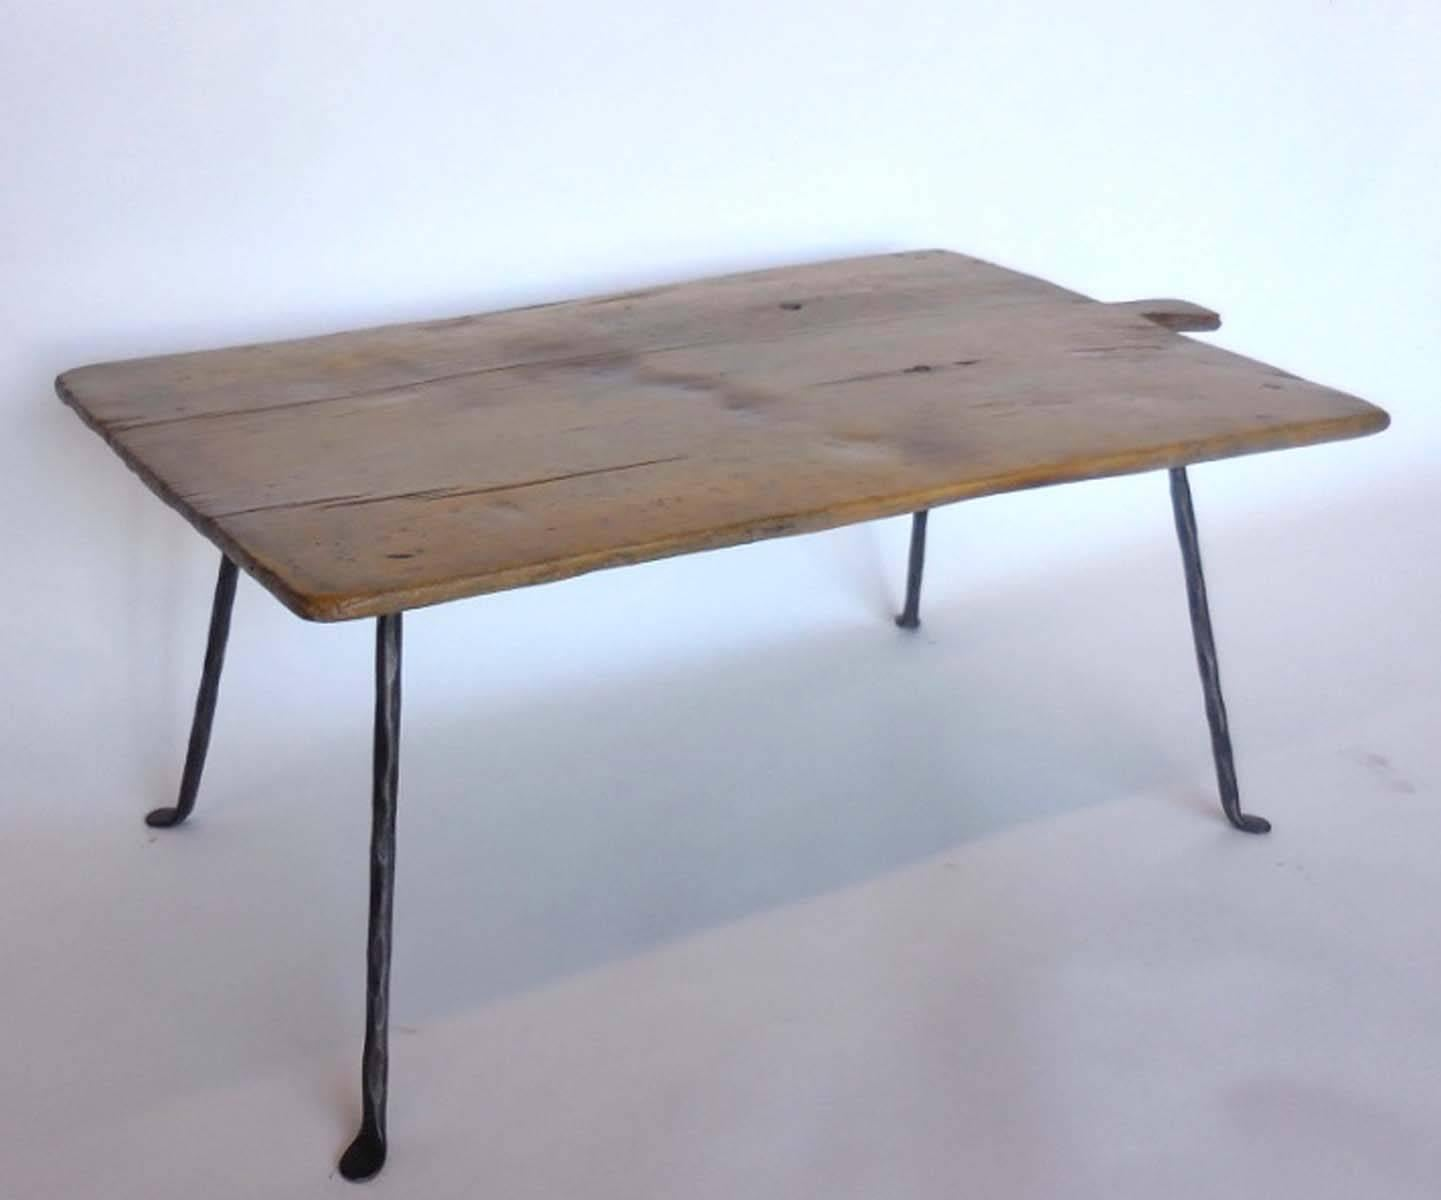 Guatemalan Set Of Four Antique Wooden Small Tray Tables With Forged Iron  Legs For Sale